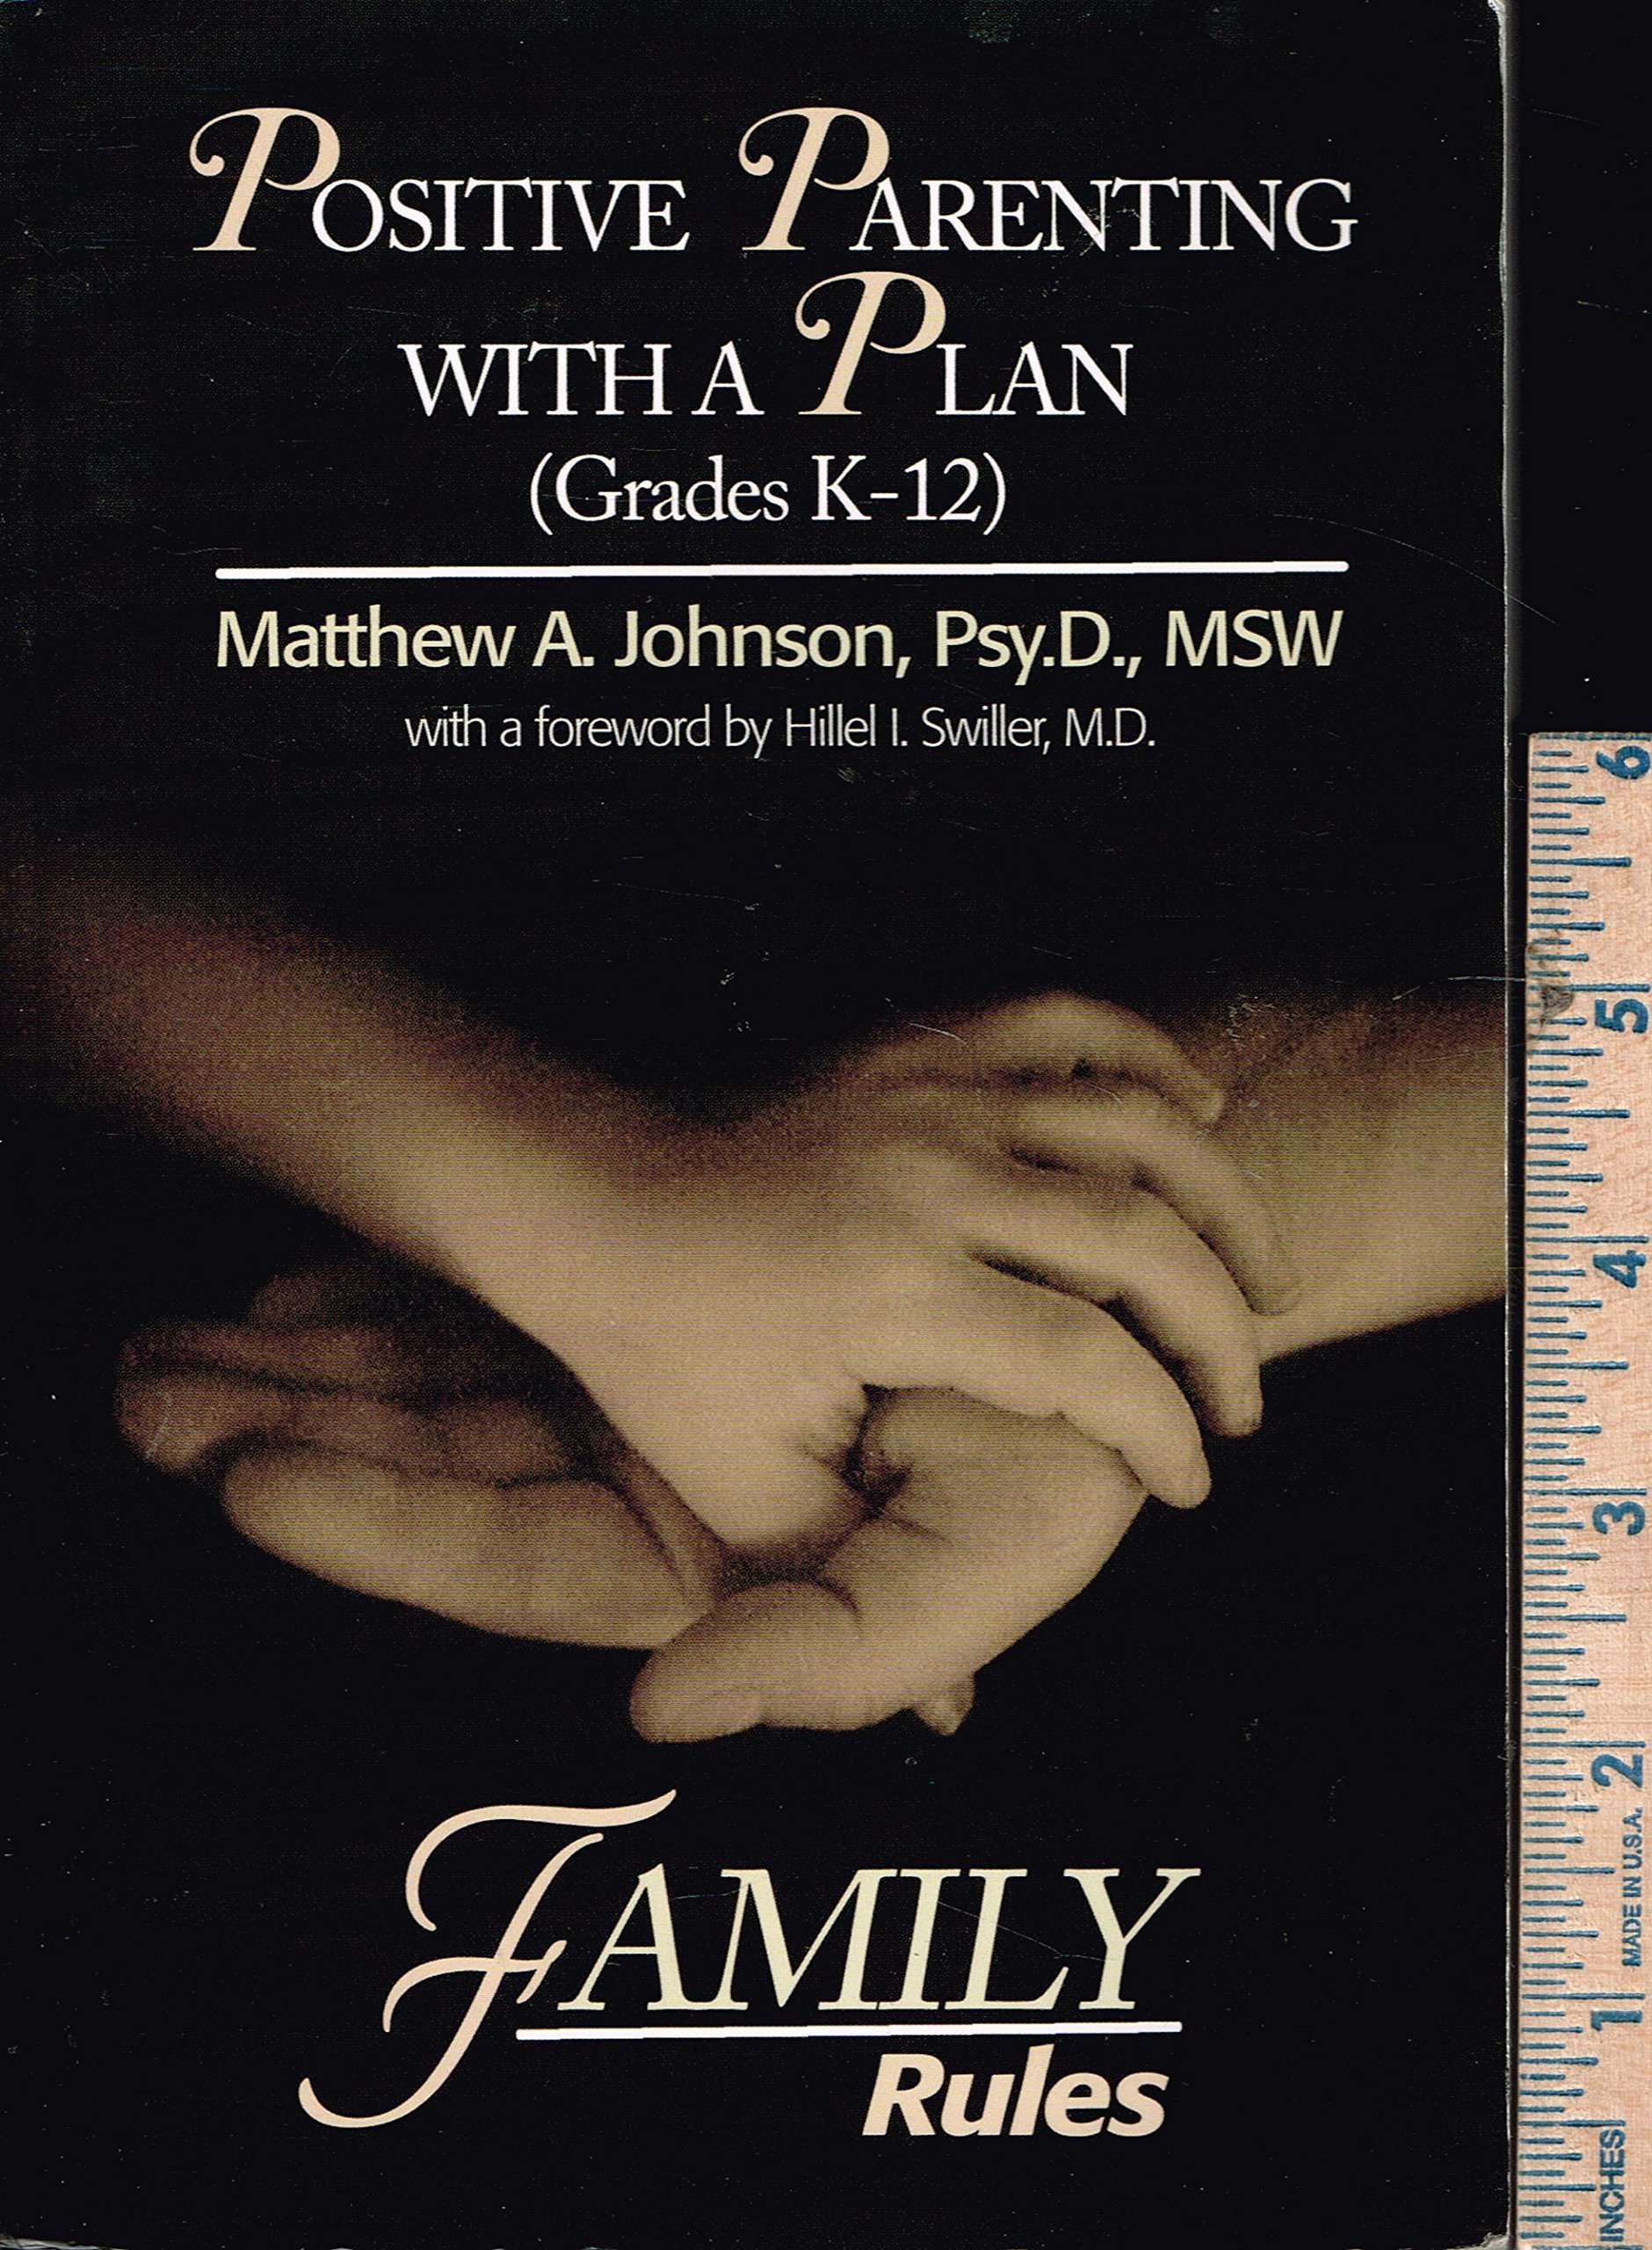 Positive Parenting with a Plan (Grade K-12) (FAMILY RULES): Psy.D, MSW  Matthew A. Johnson: 9781888125467: Amazon.com: Books